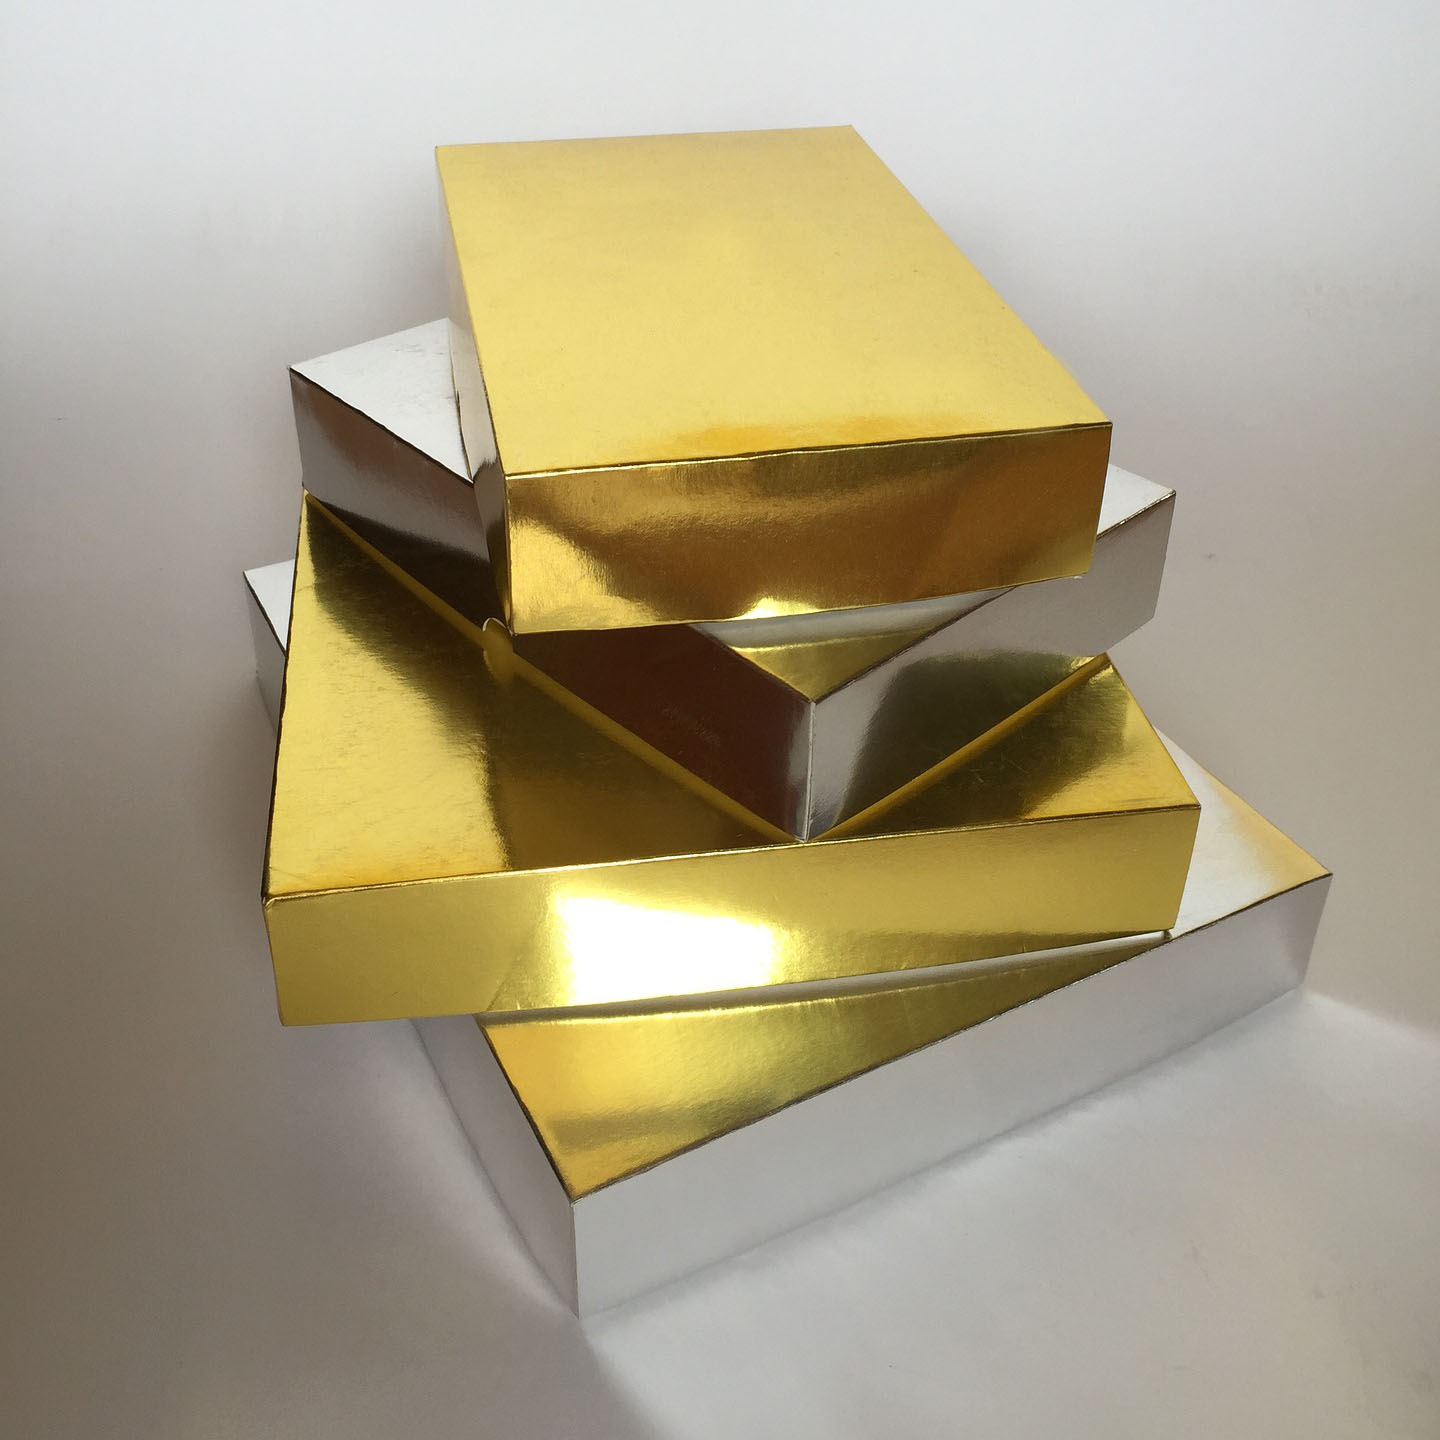 metallic gold packaging boxes